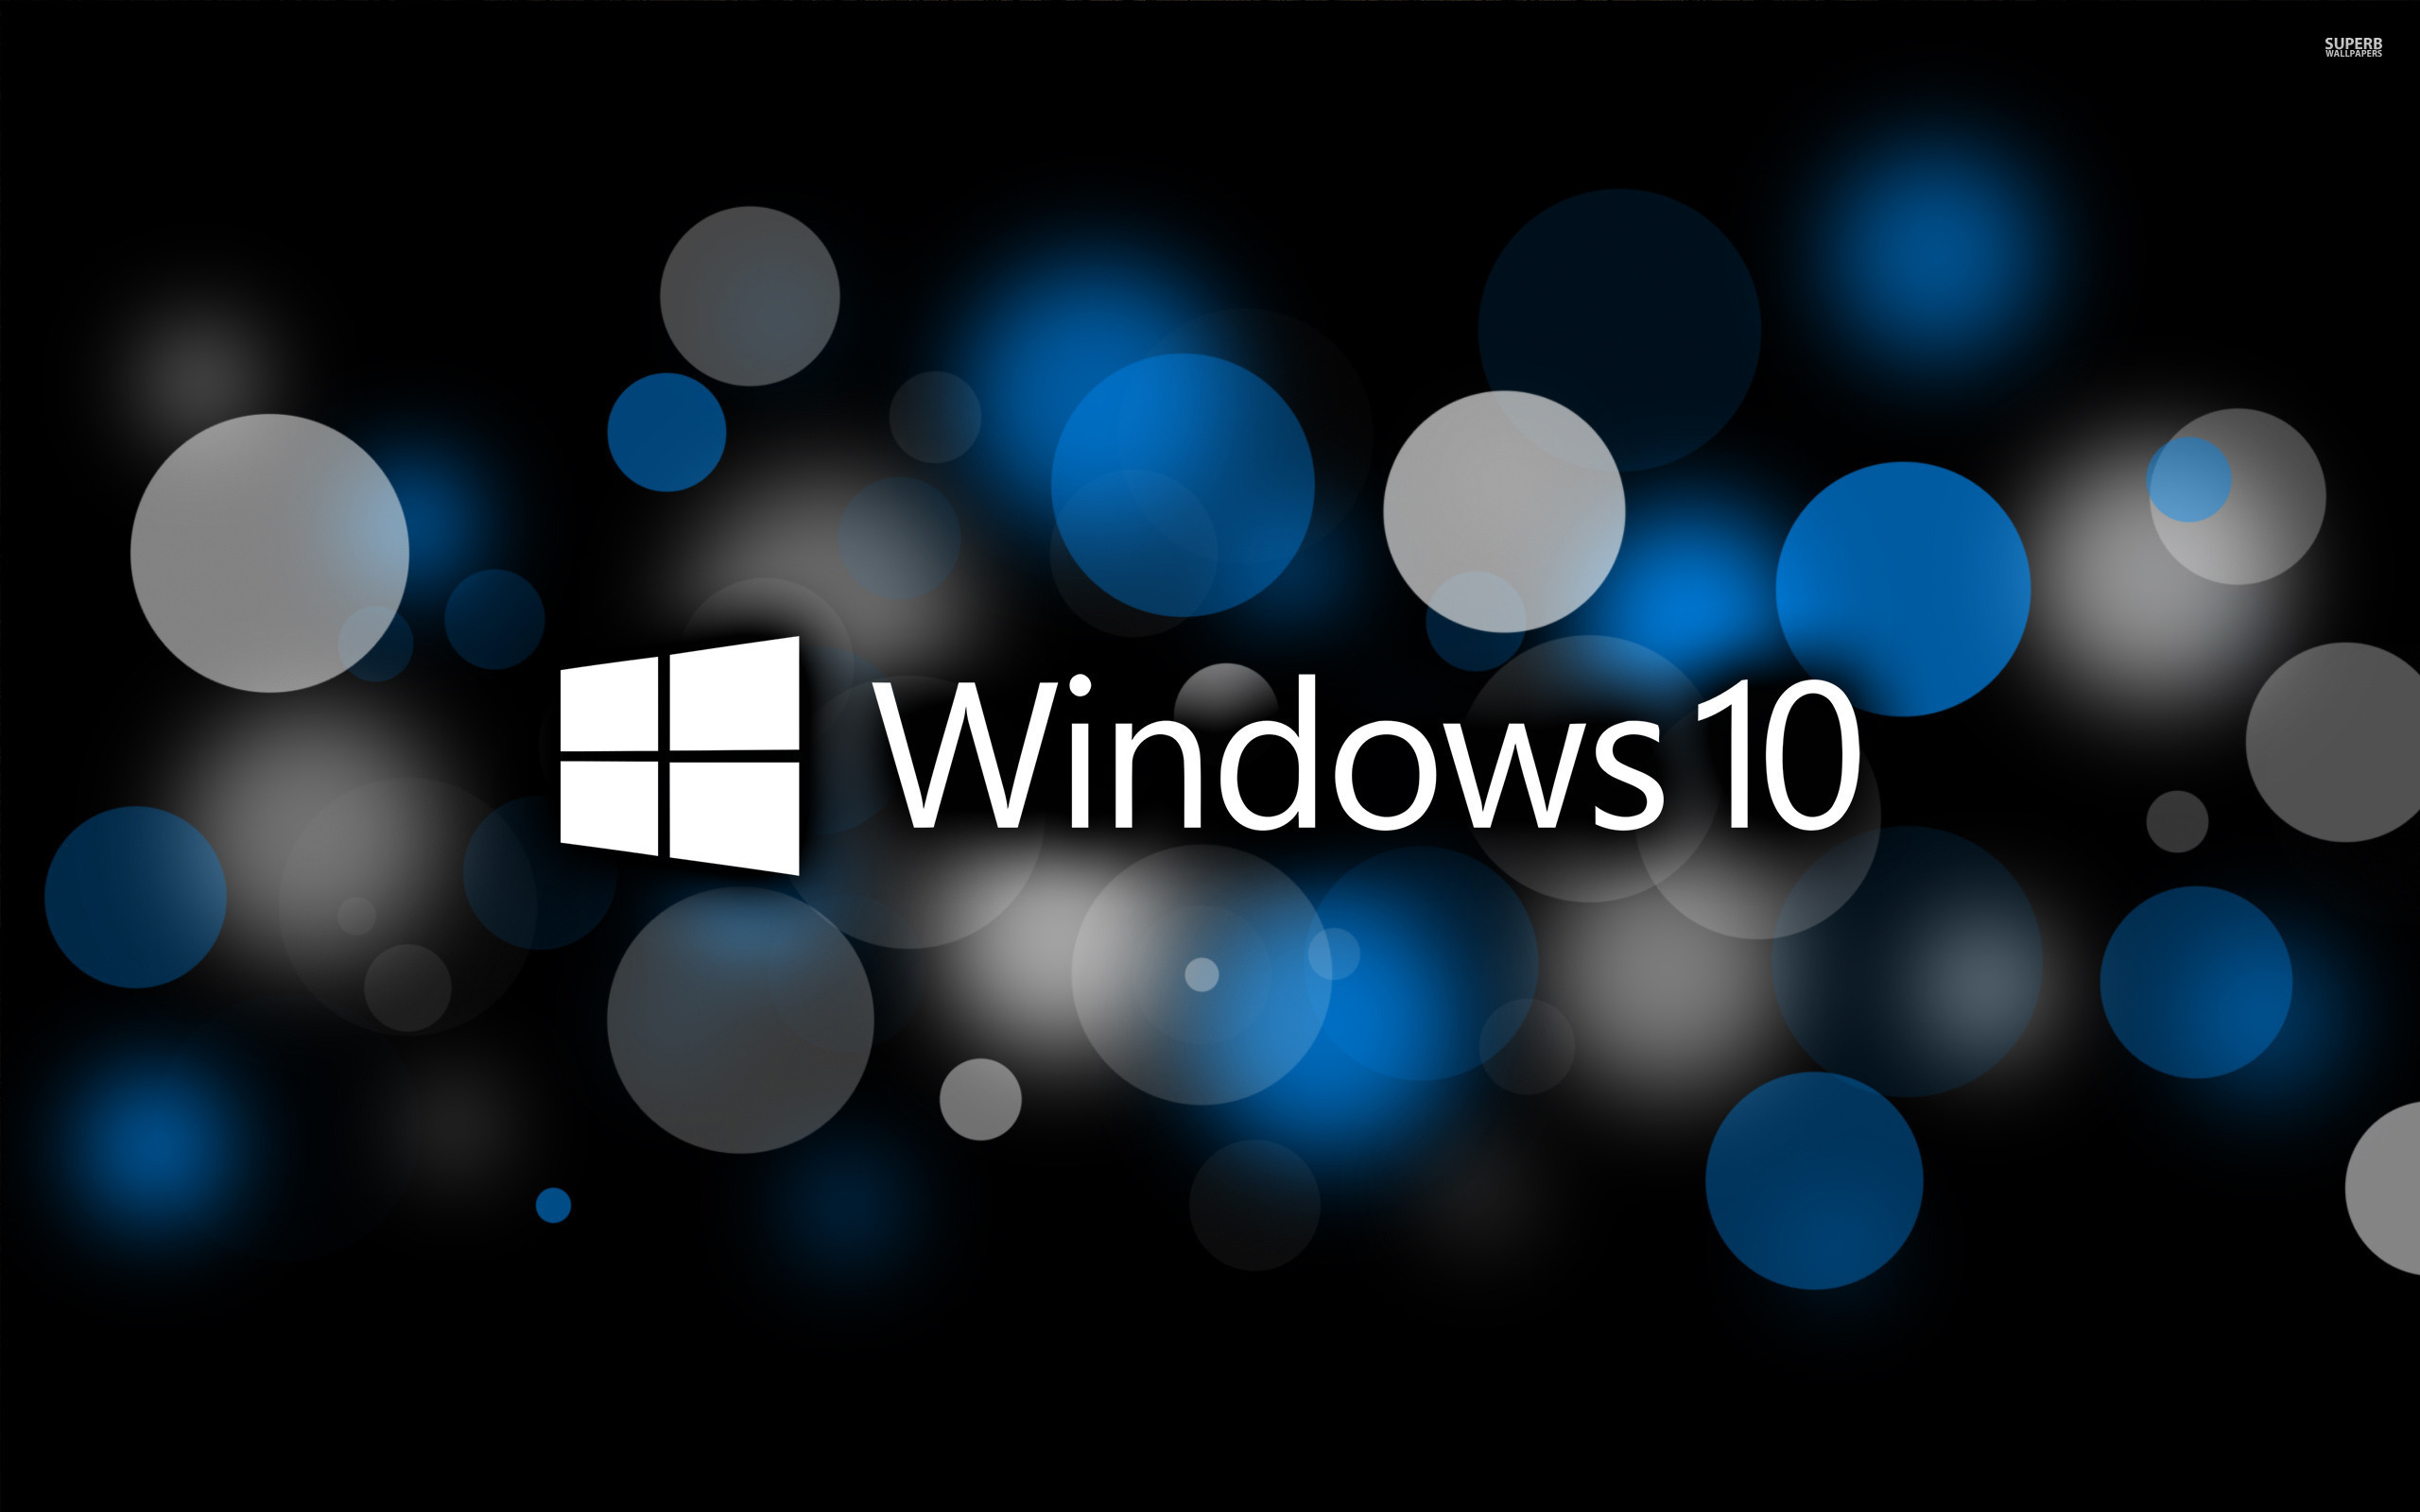 Windows 10 Video Wallpaper - WallpaperSafari